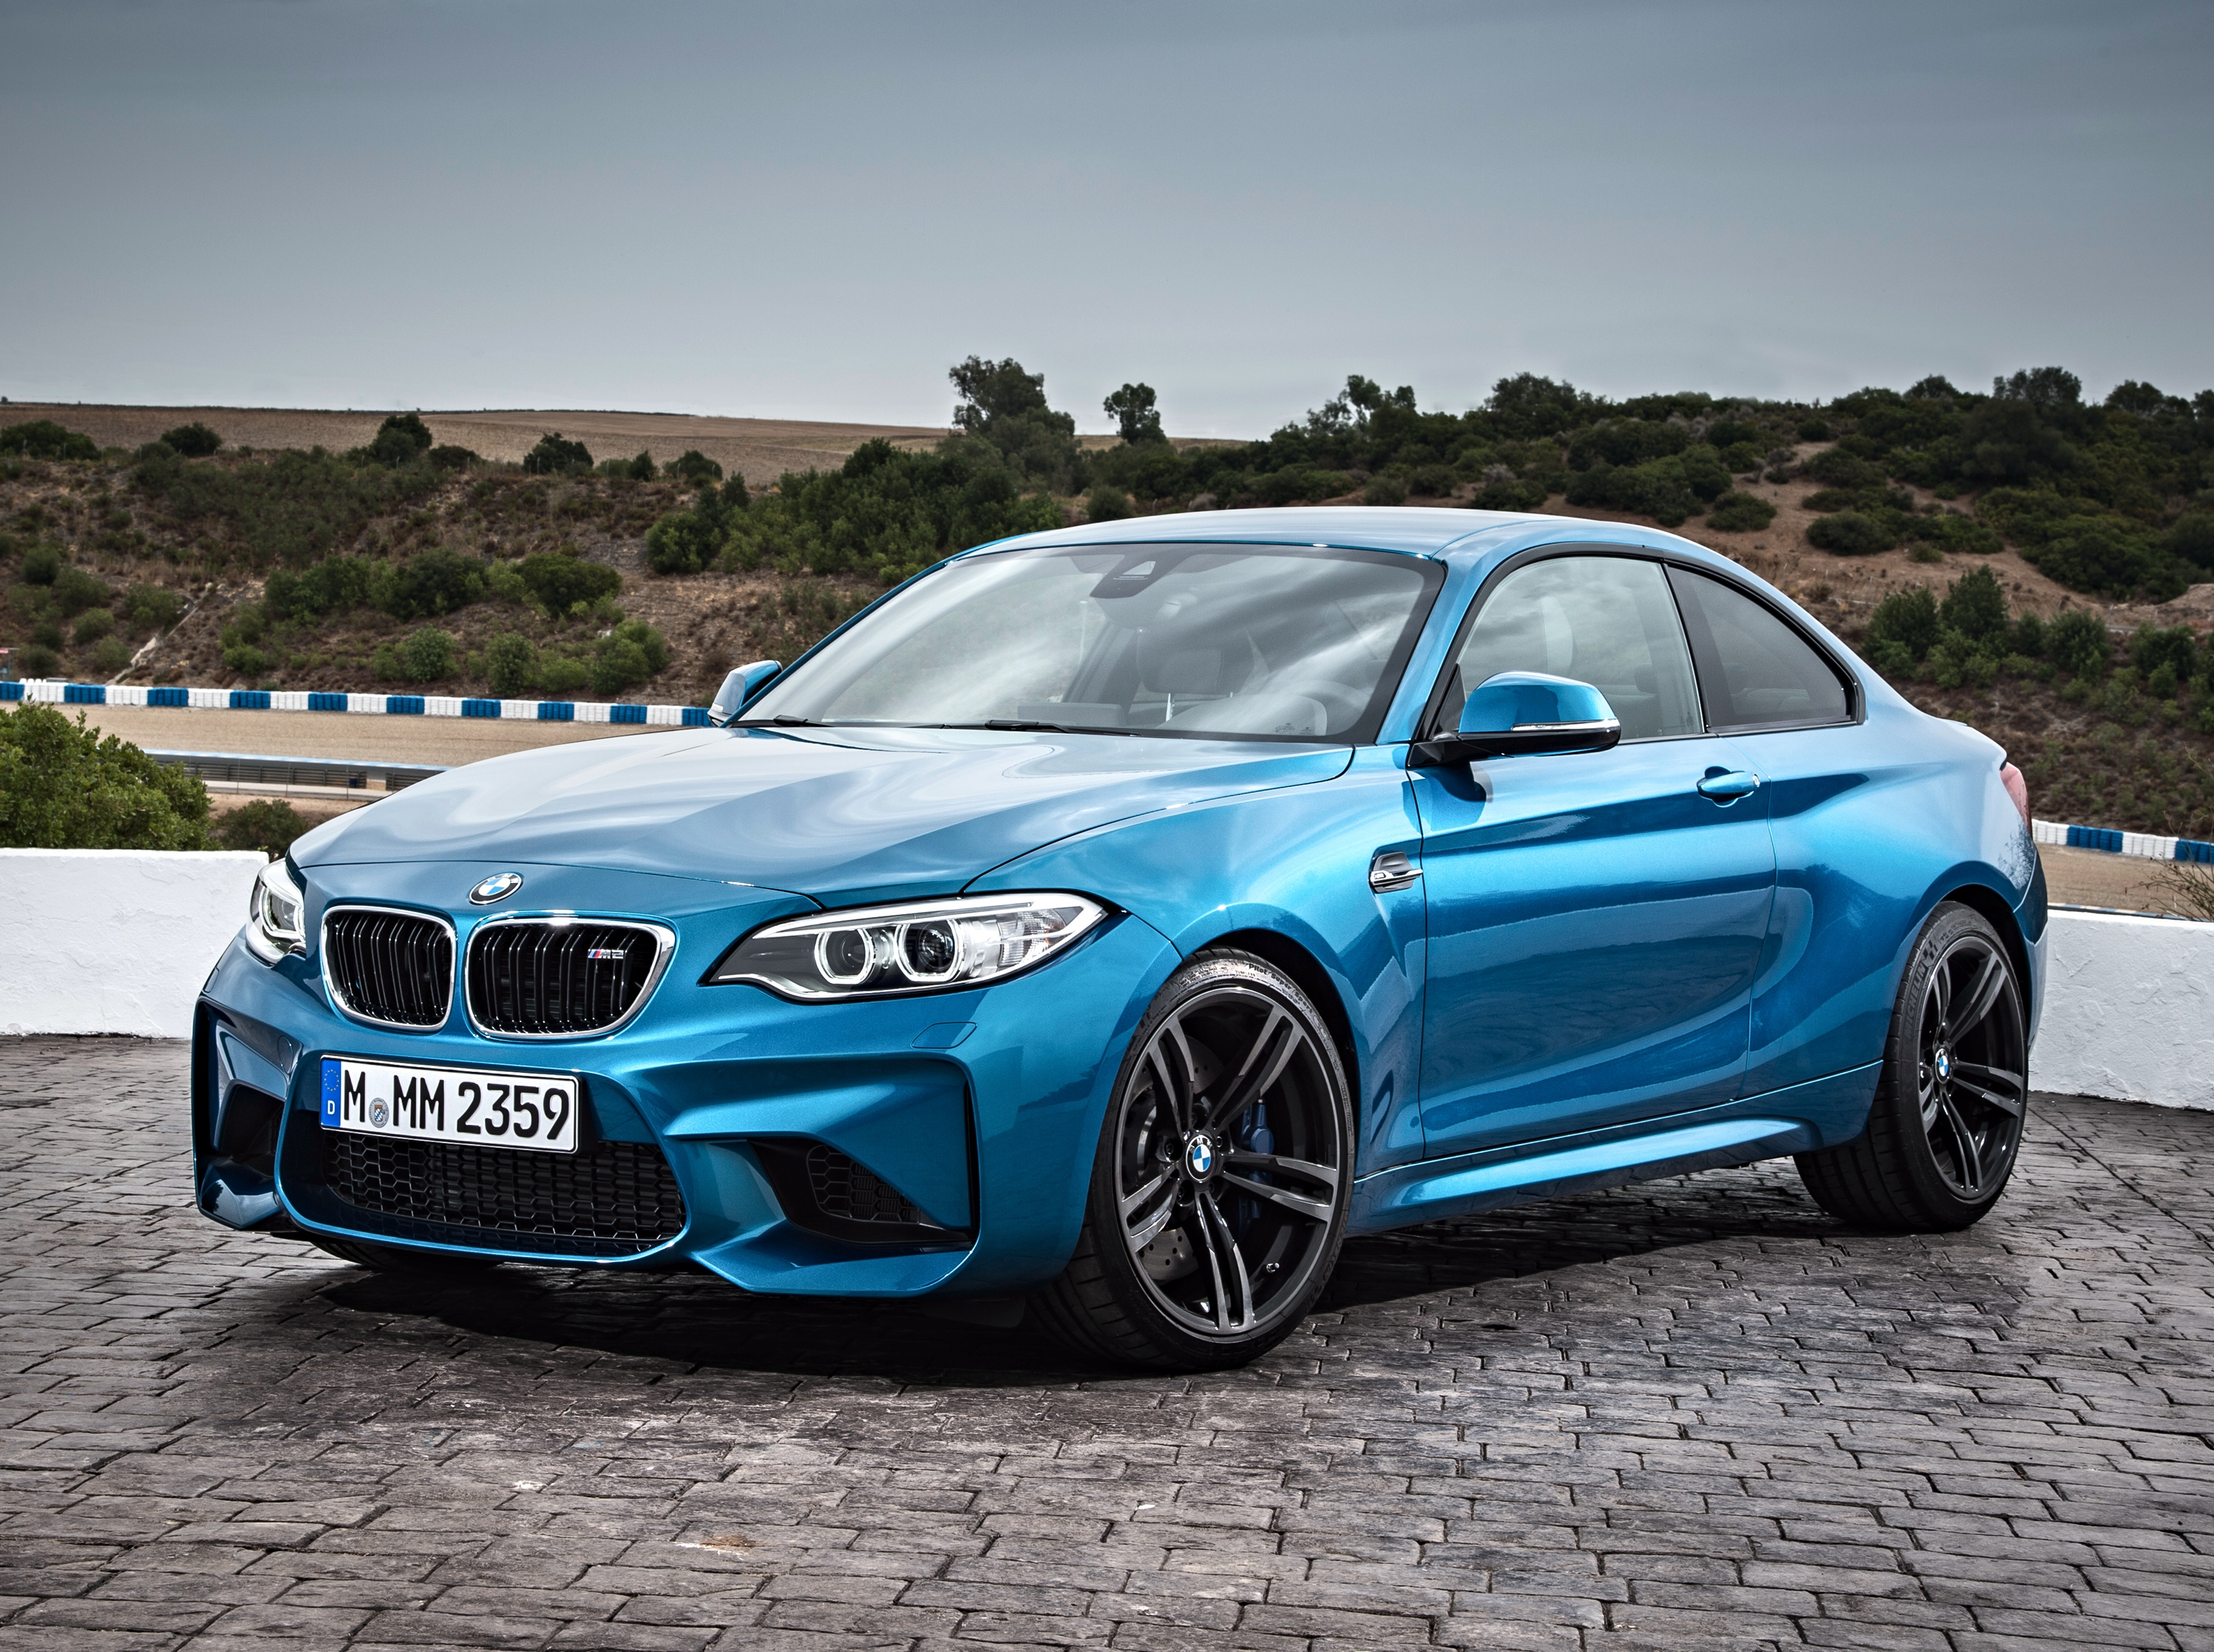 3178x2371 - BMW M2 Coupe Wallpapers 28